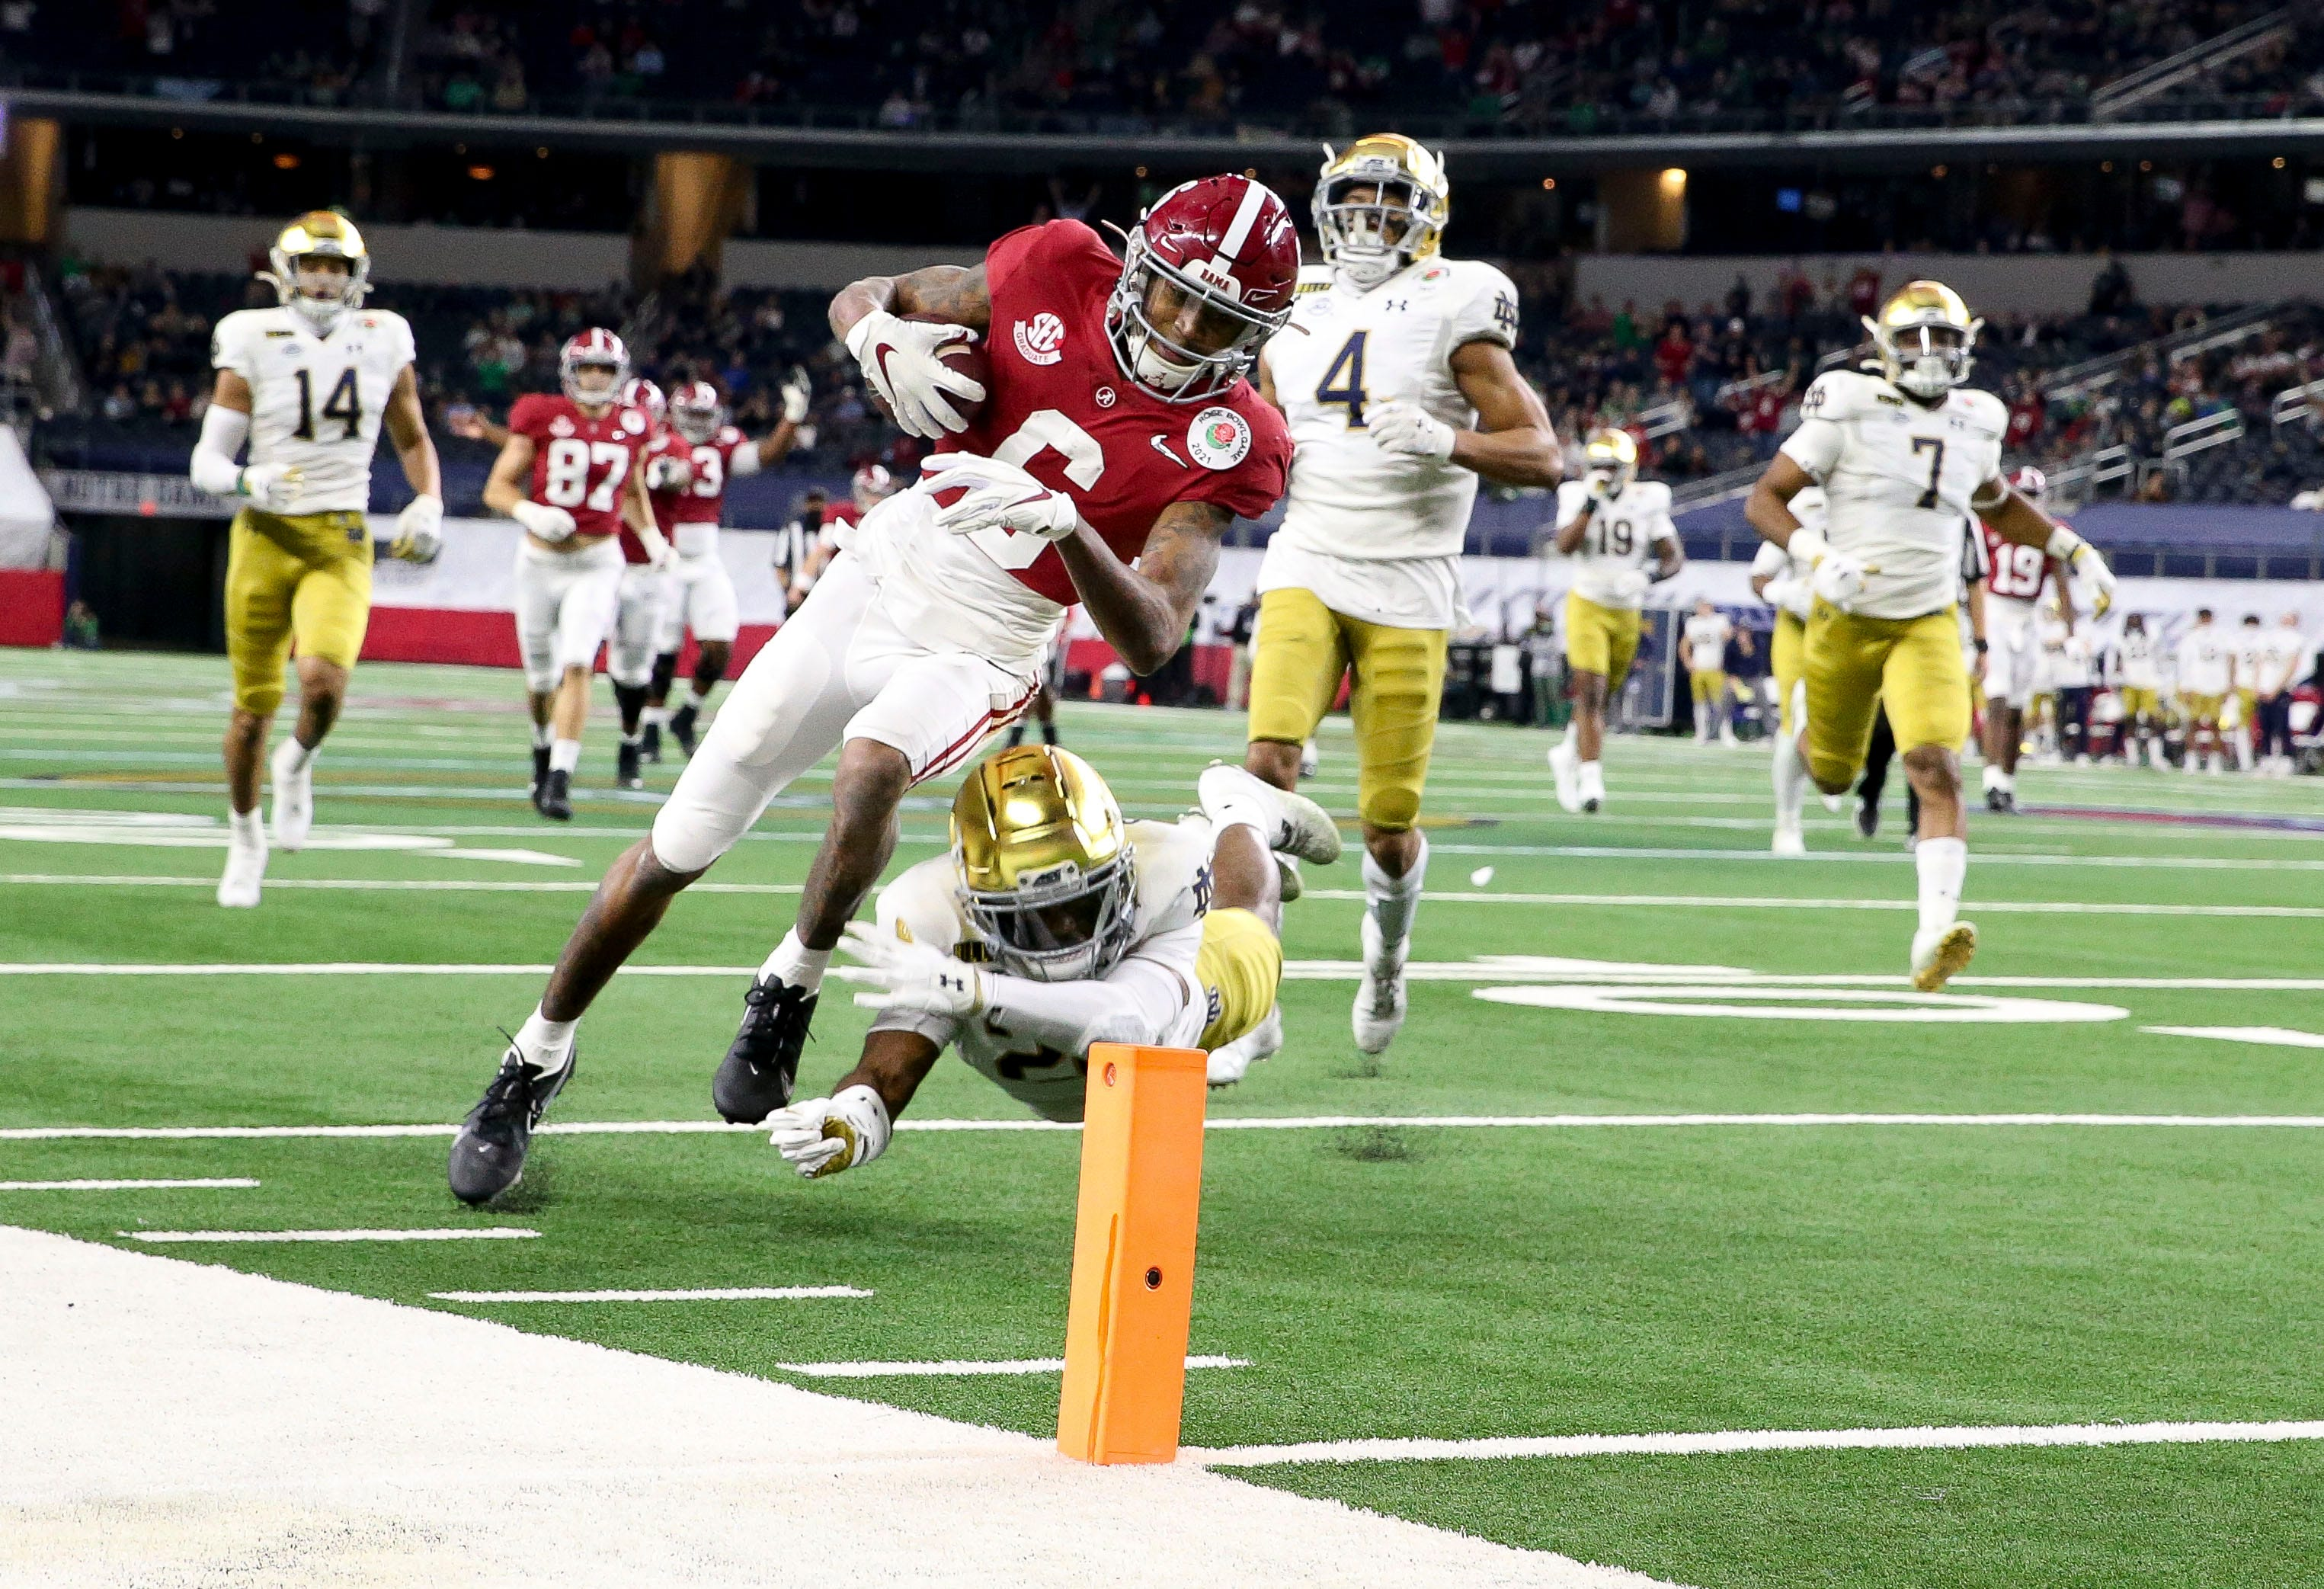 Cfp Championship Game Keys To Victory For Alabama Ohio State